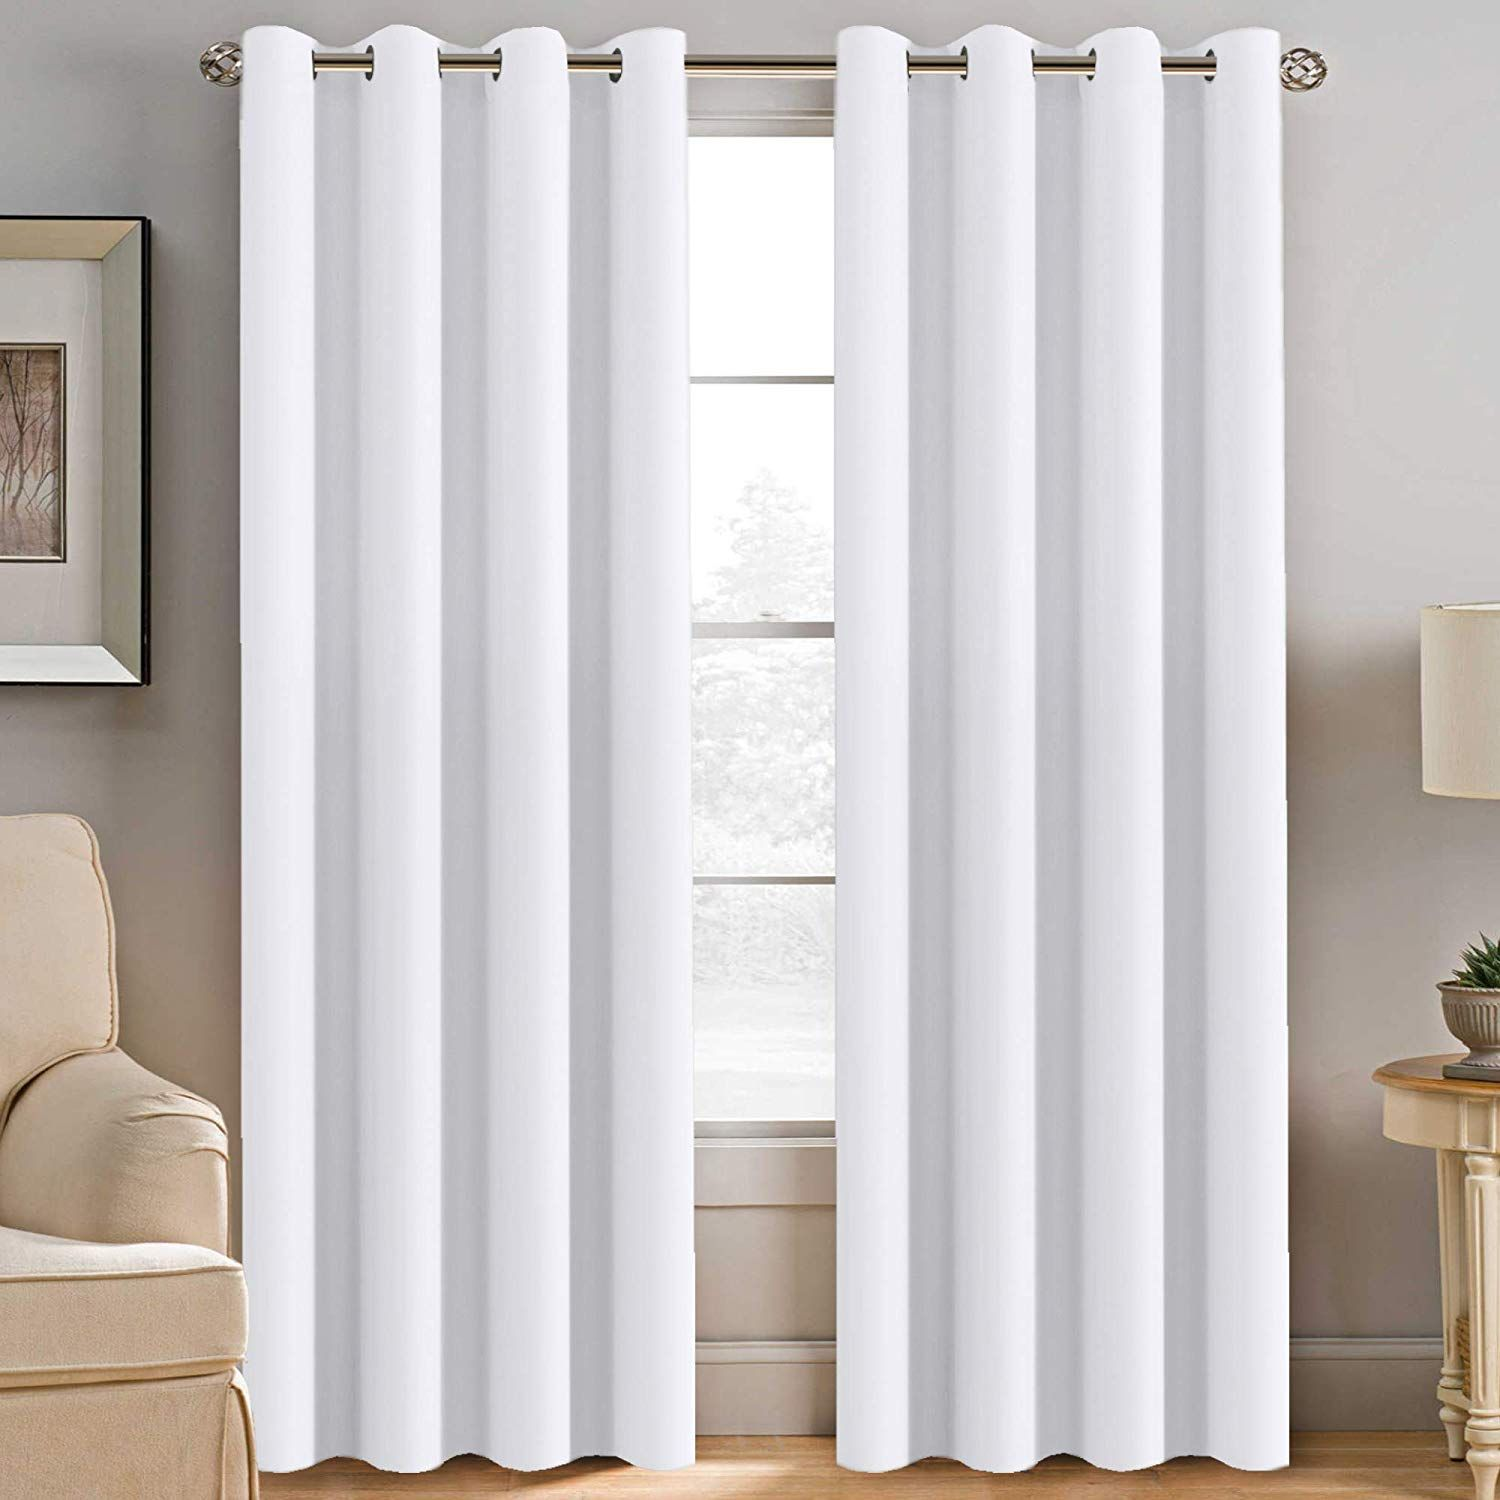 6 Best White Blackout Curtains Reviews Country Curtains In 2020 White Curtains White Blackout Curtains Insulated Window Treatments